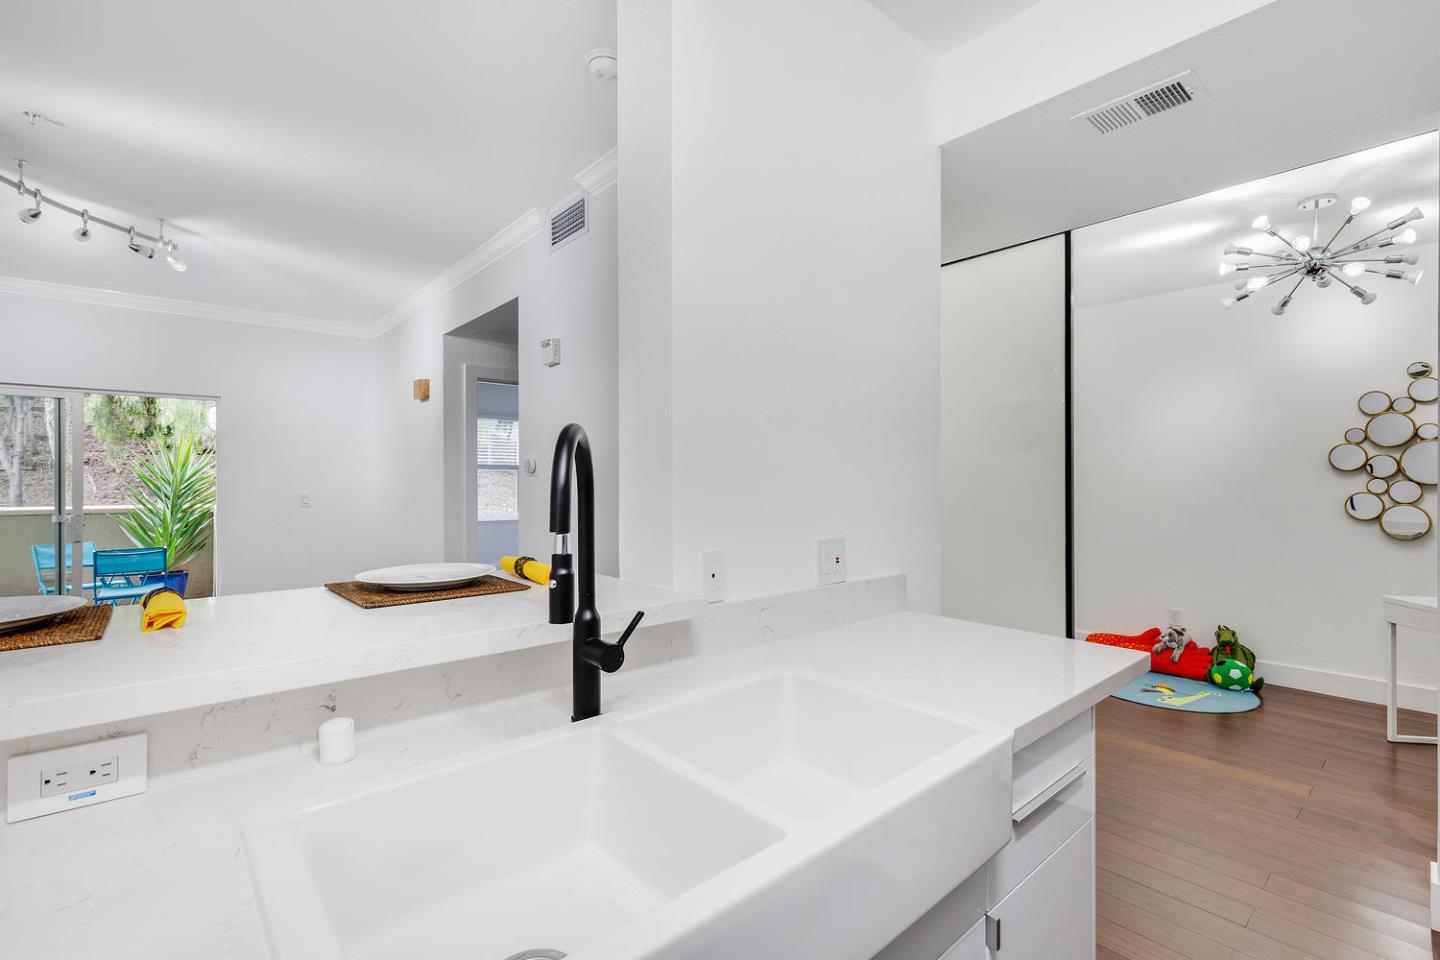 2255 SHOWERS DR 184, MOUNTAIN VIEW, CA 94040